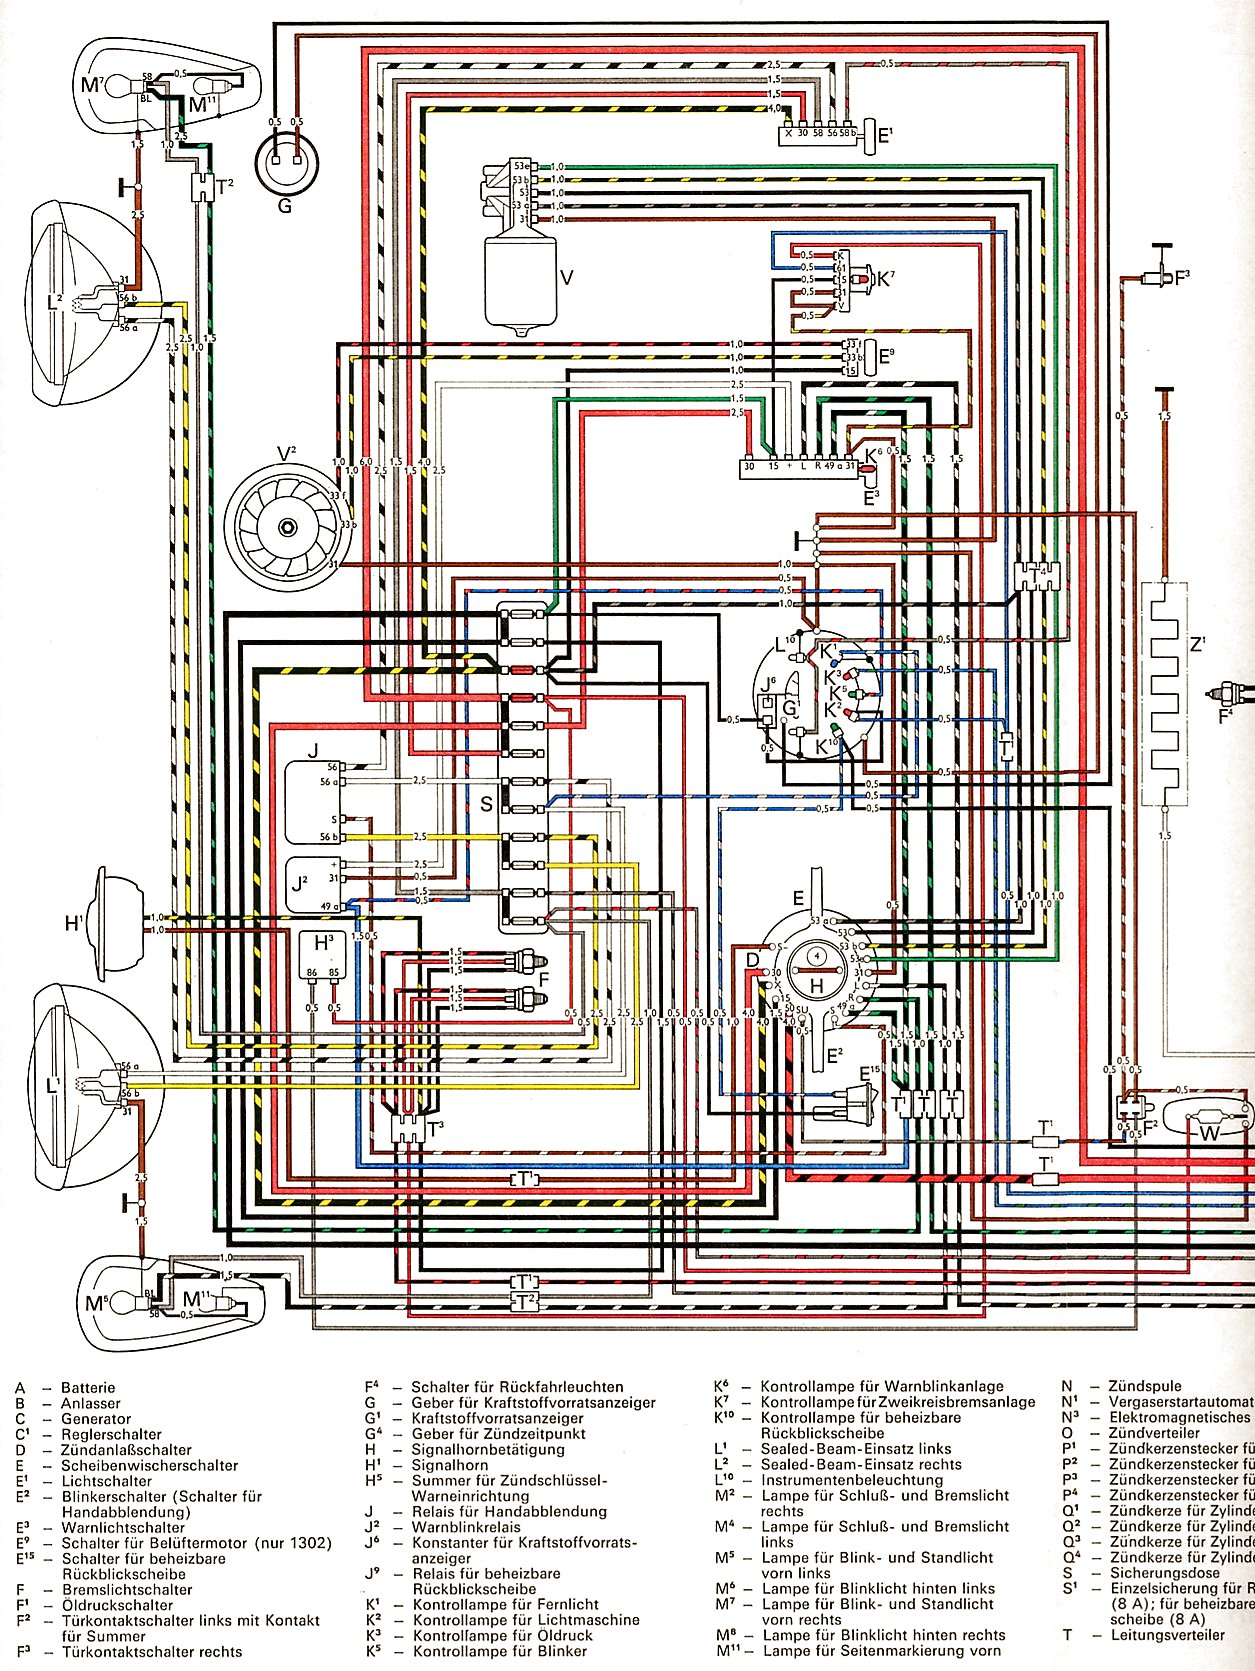 1974 Vw Thing Wiring Diagram Start Building A 1978 Engine Need Standard Fuse Panel Help Shoptalkforums Com Rh 1970